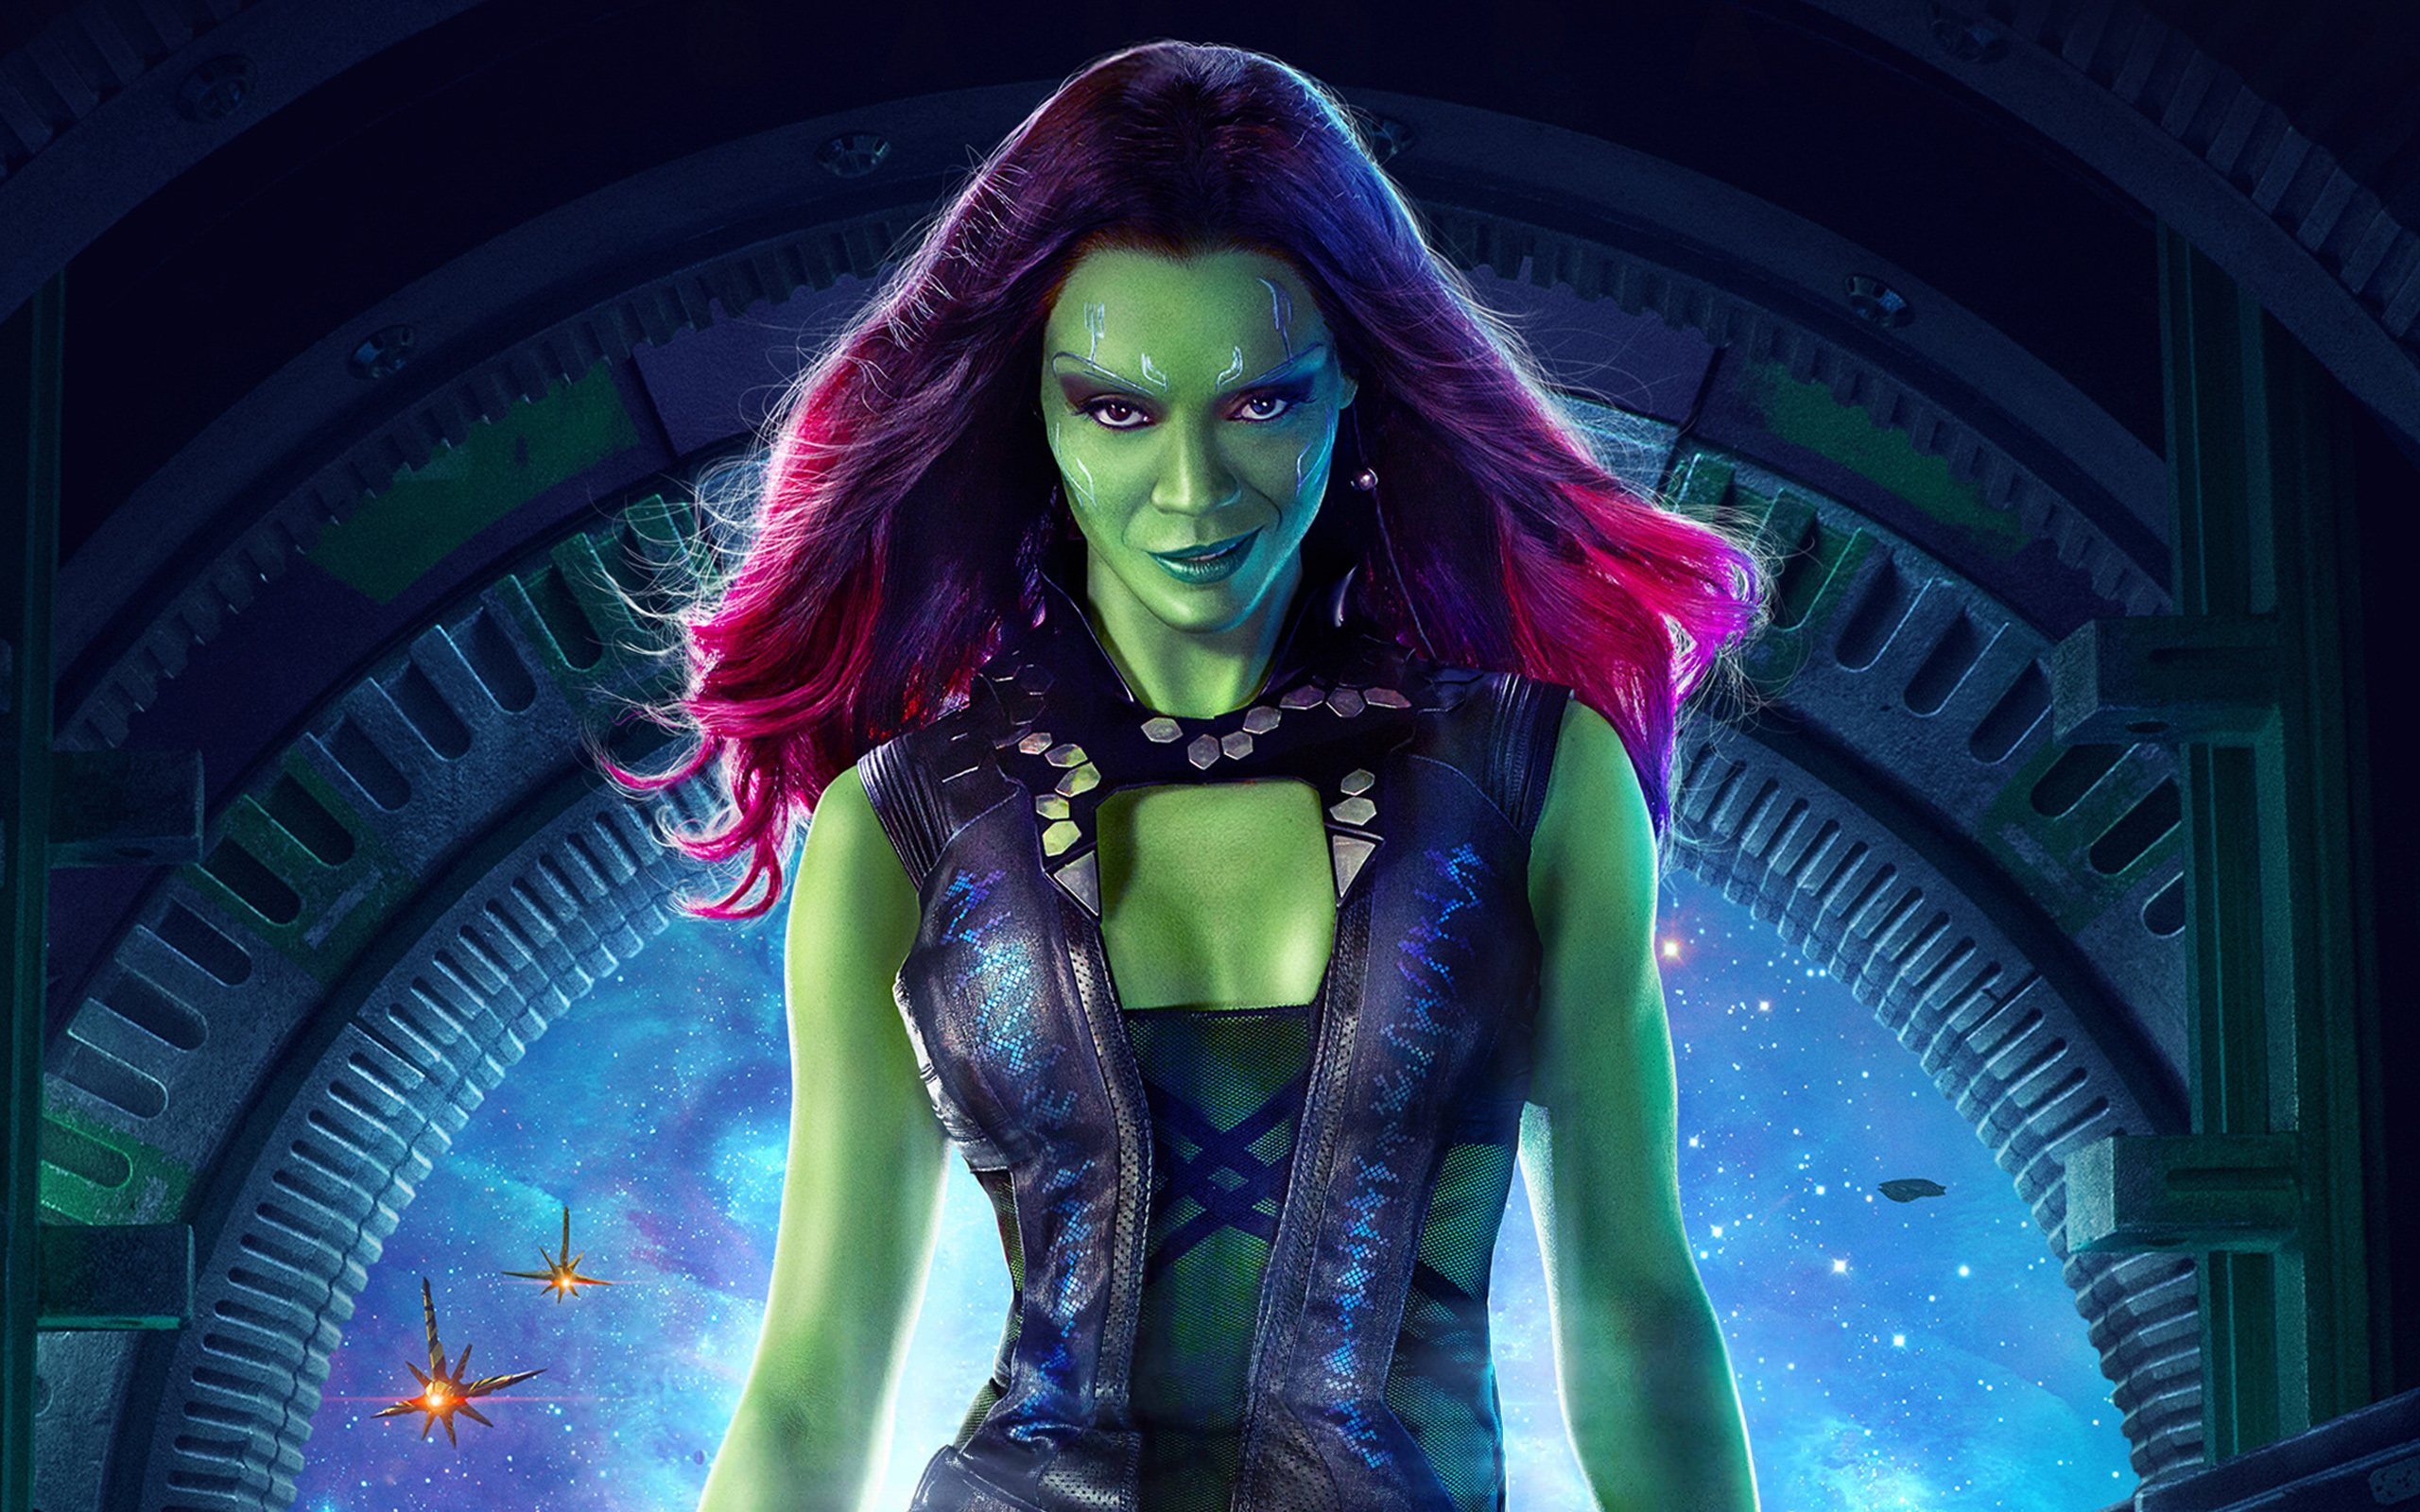 Zoe Saldana As Gamora 4143152 2560x1600 All For Desktop